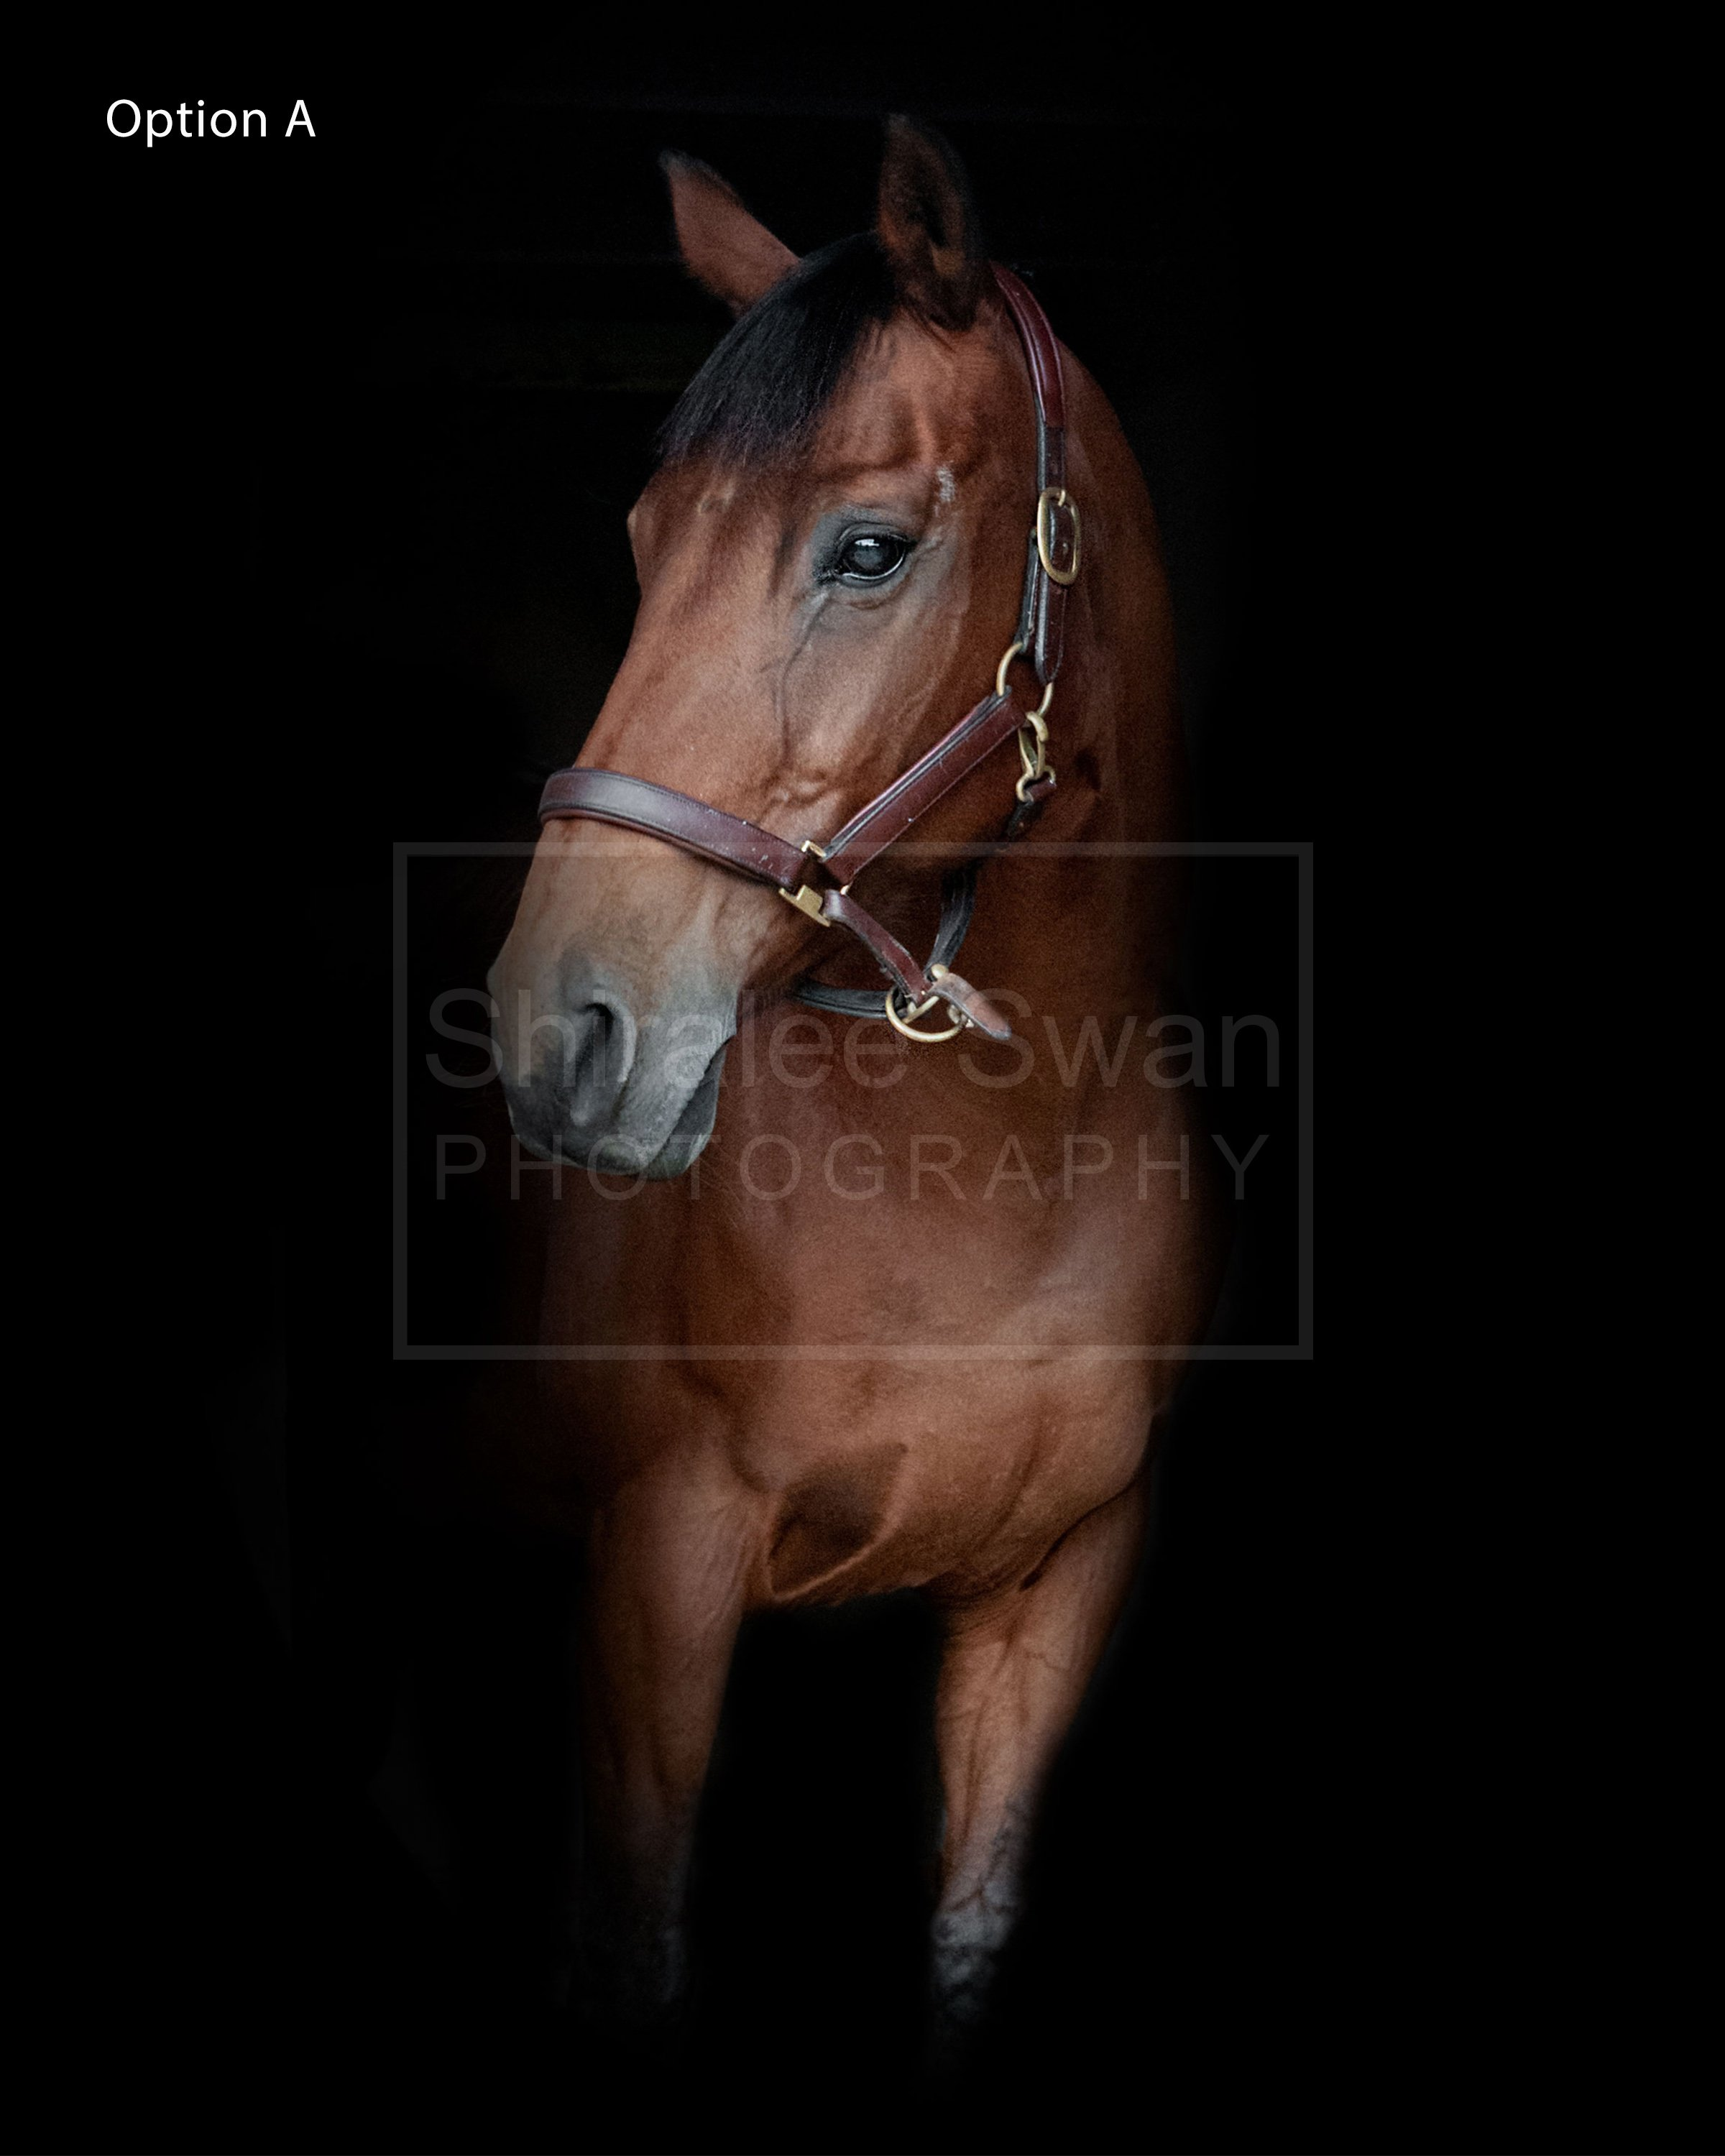 Equine Portrait option a